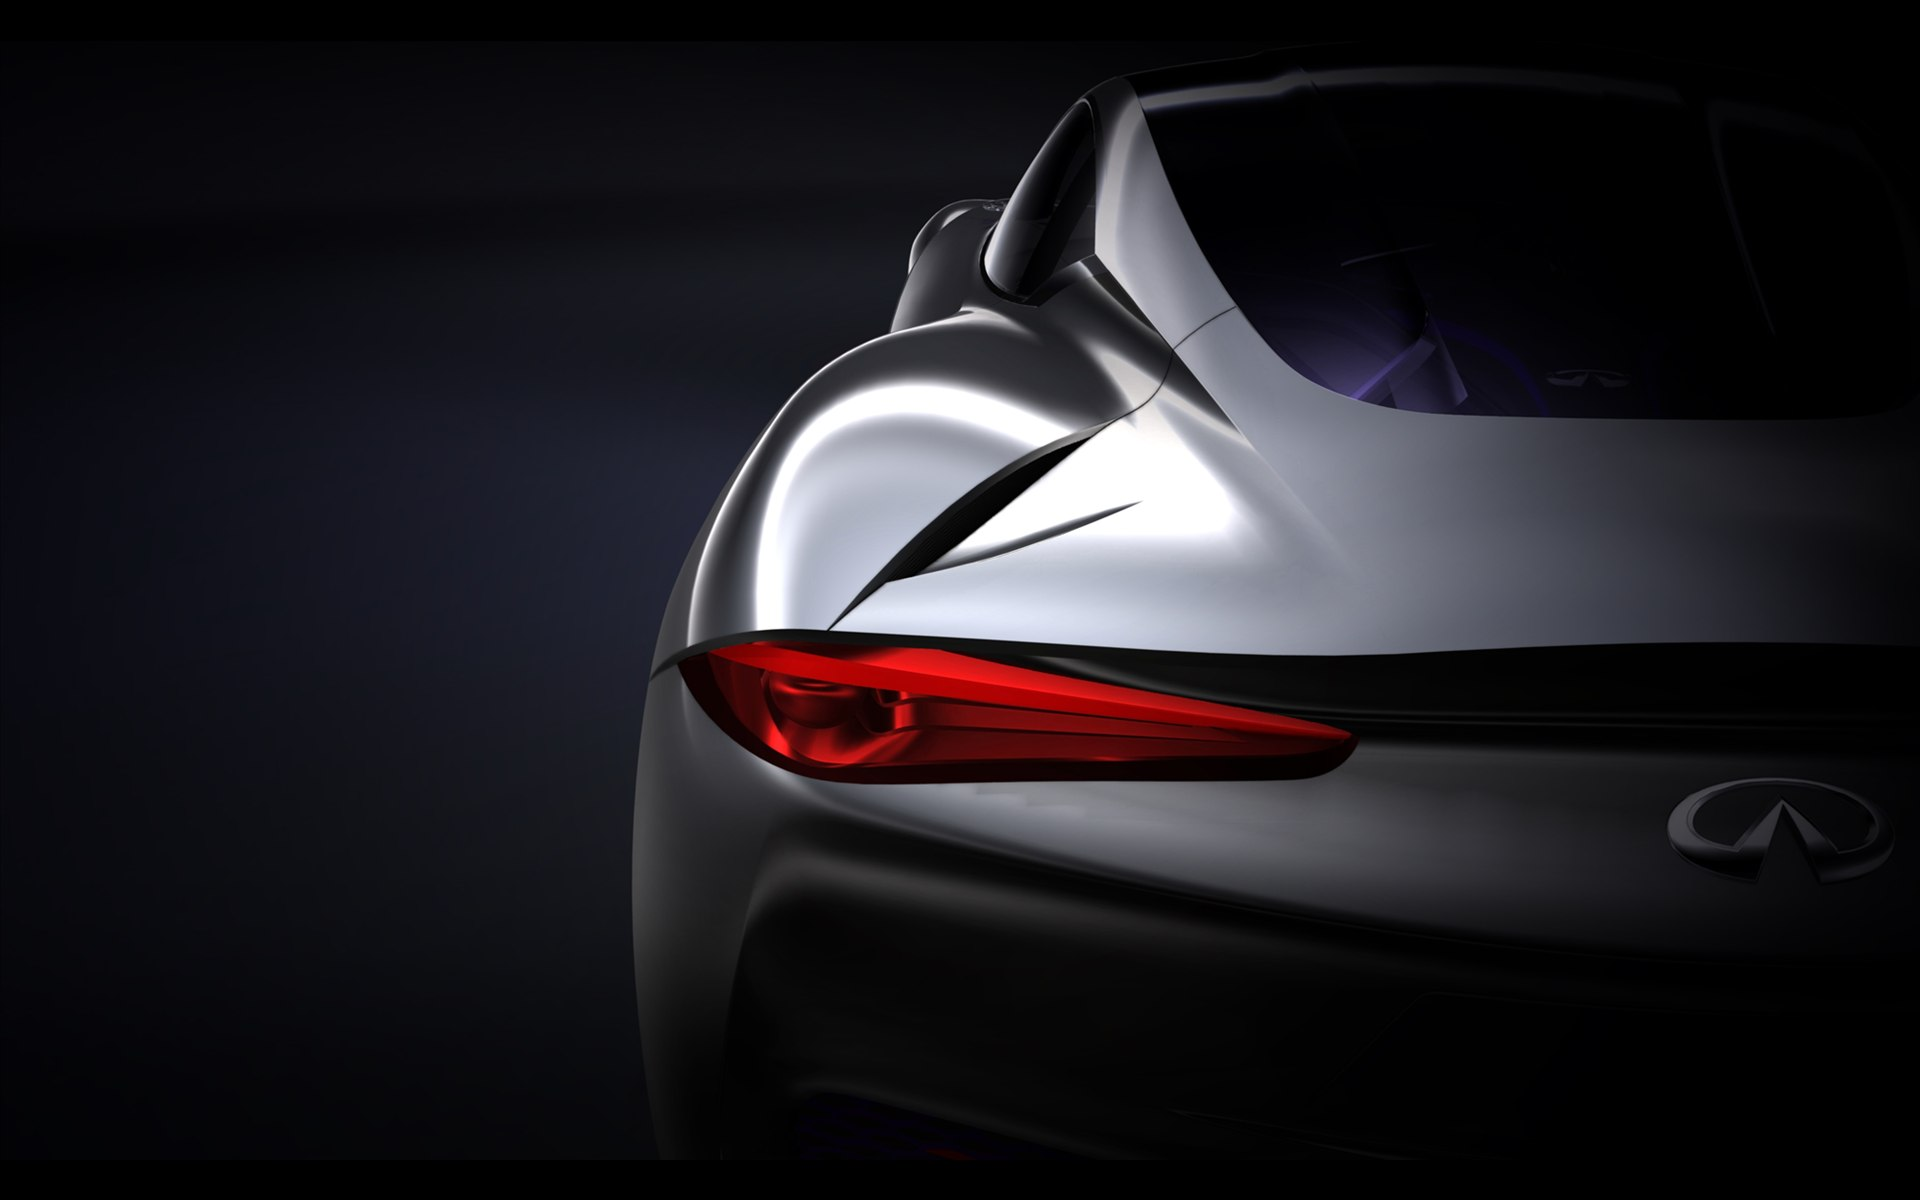 Infiniti Electric Sports Car Wallpaper HD Car Wallpapers - Sports cars 2012